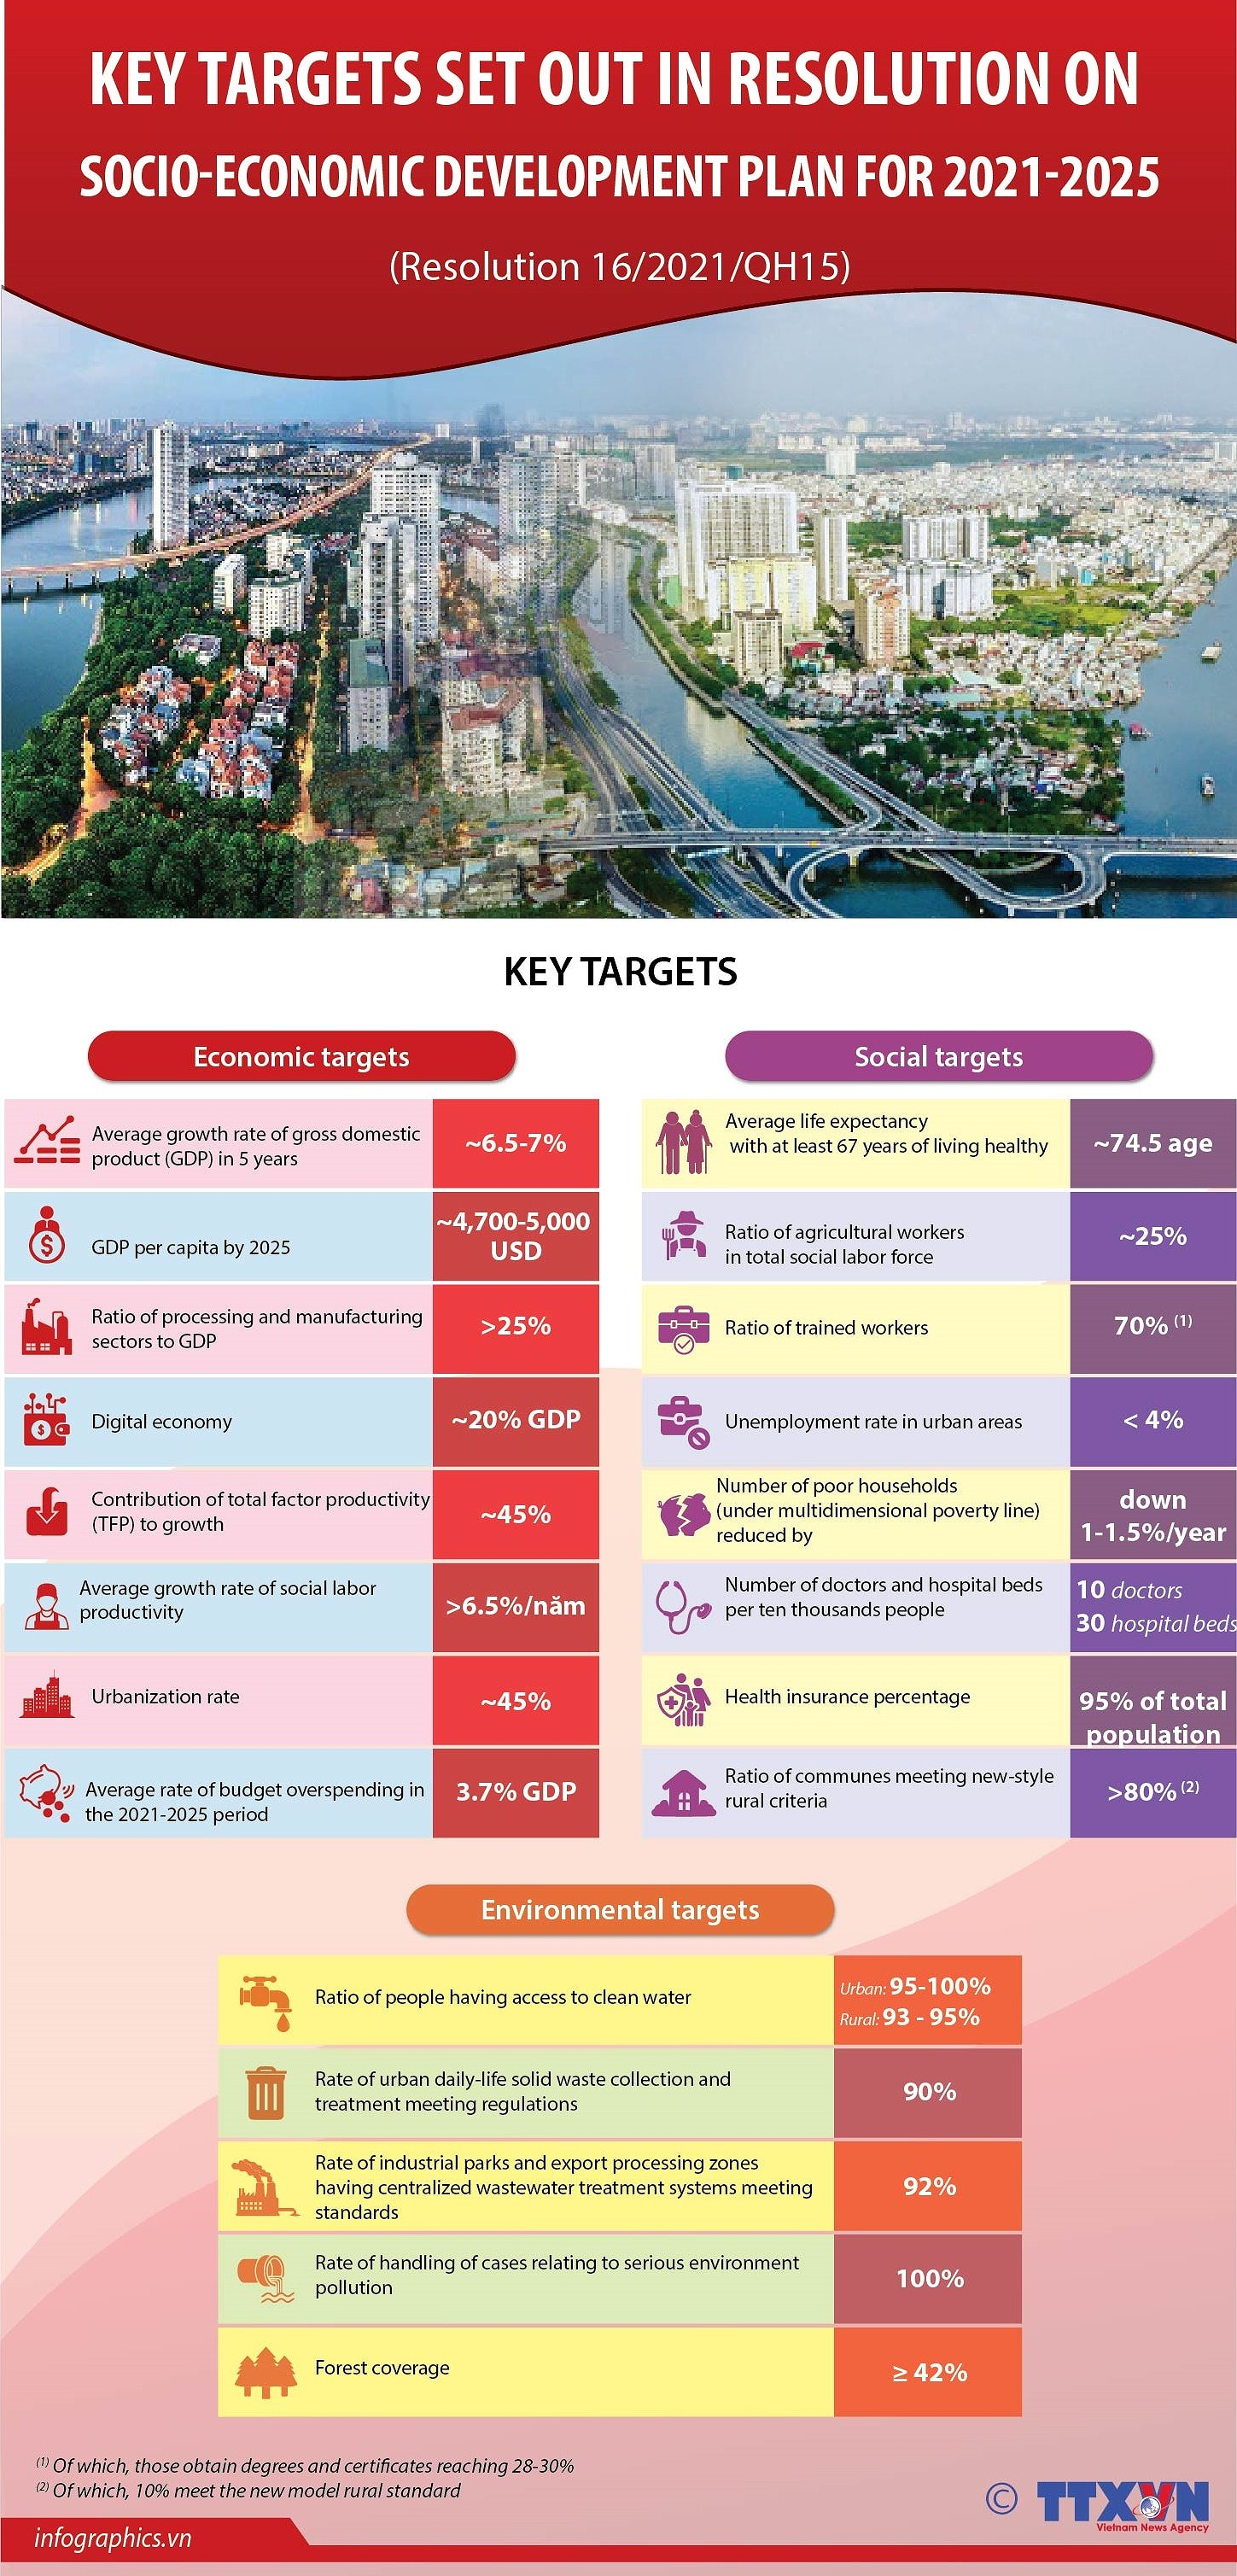 Key targets set out in resolution on socio-economic development plan for 2021-2025 hinh anh 1